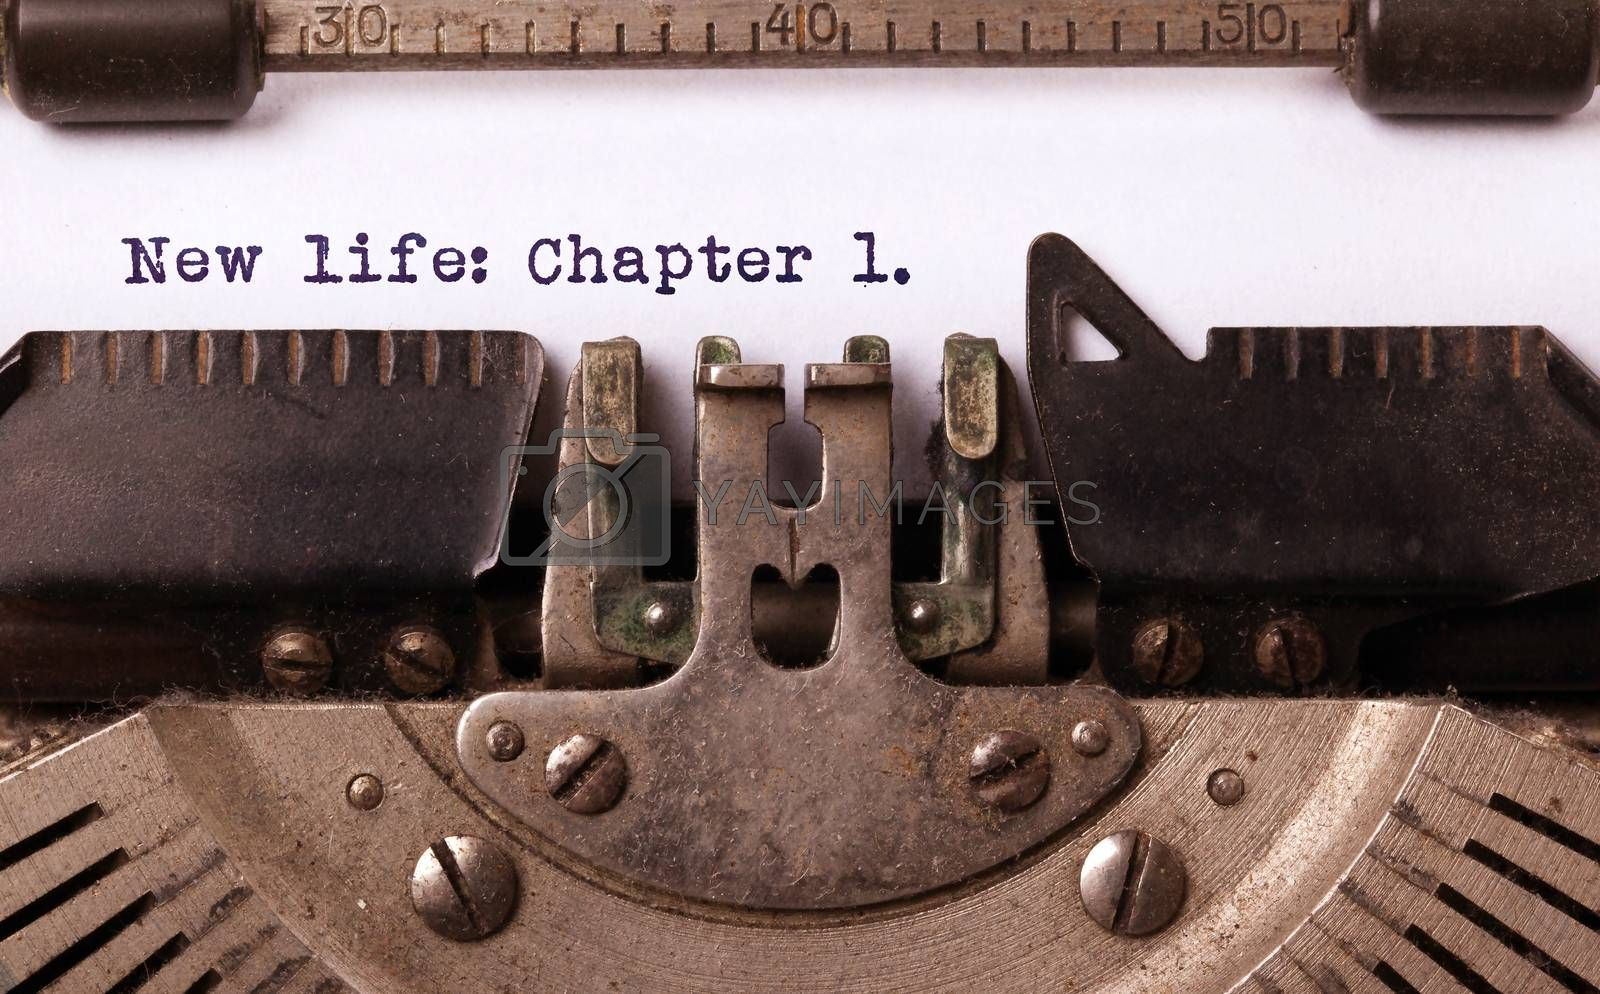 Vintage inscription made by old typewriter, New life: chapter 1